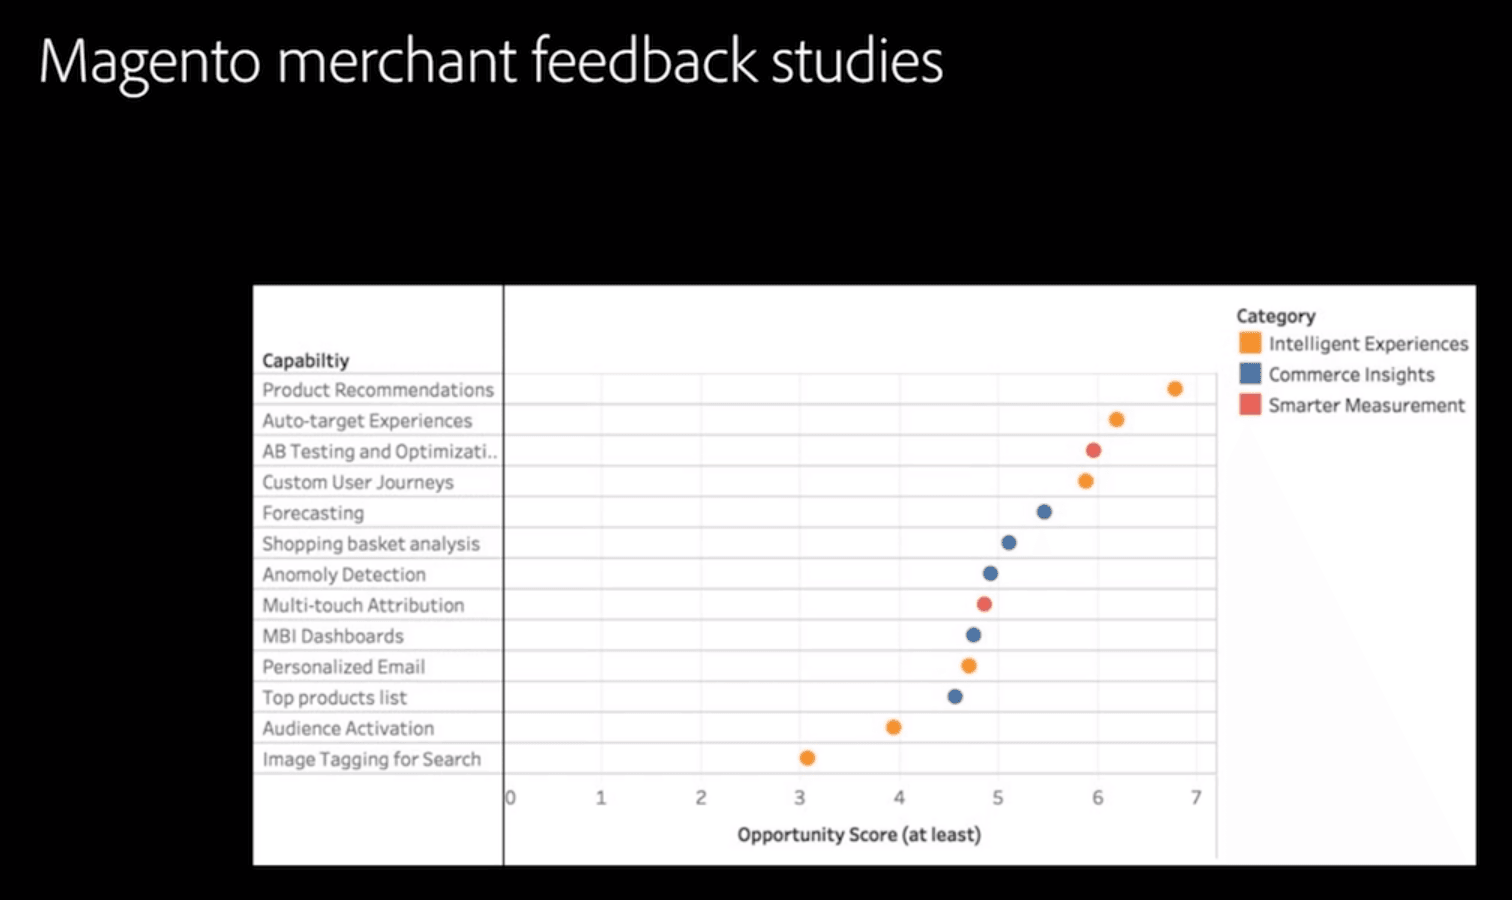 Magento merchants feedback studies - Adobe Summit 2020 - Meetanshi